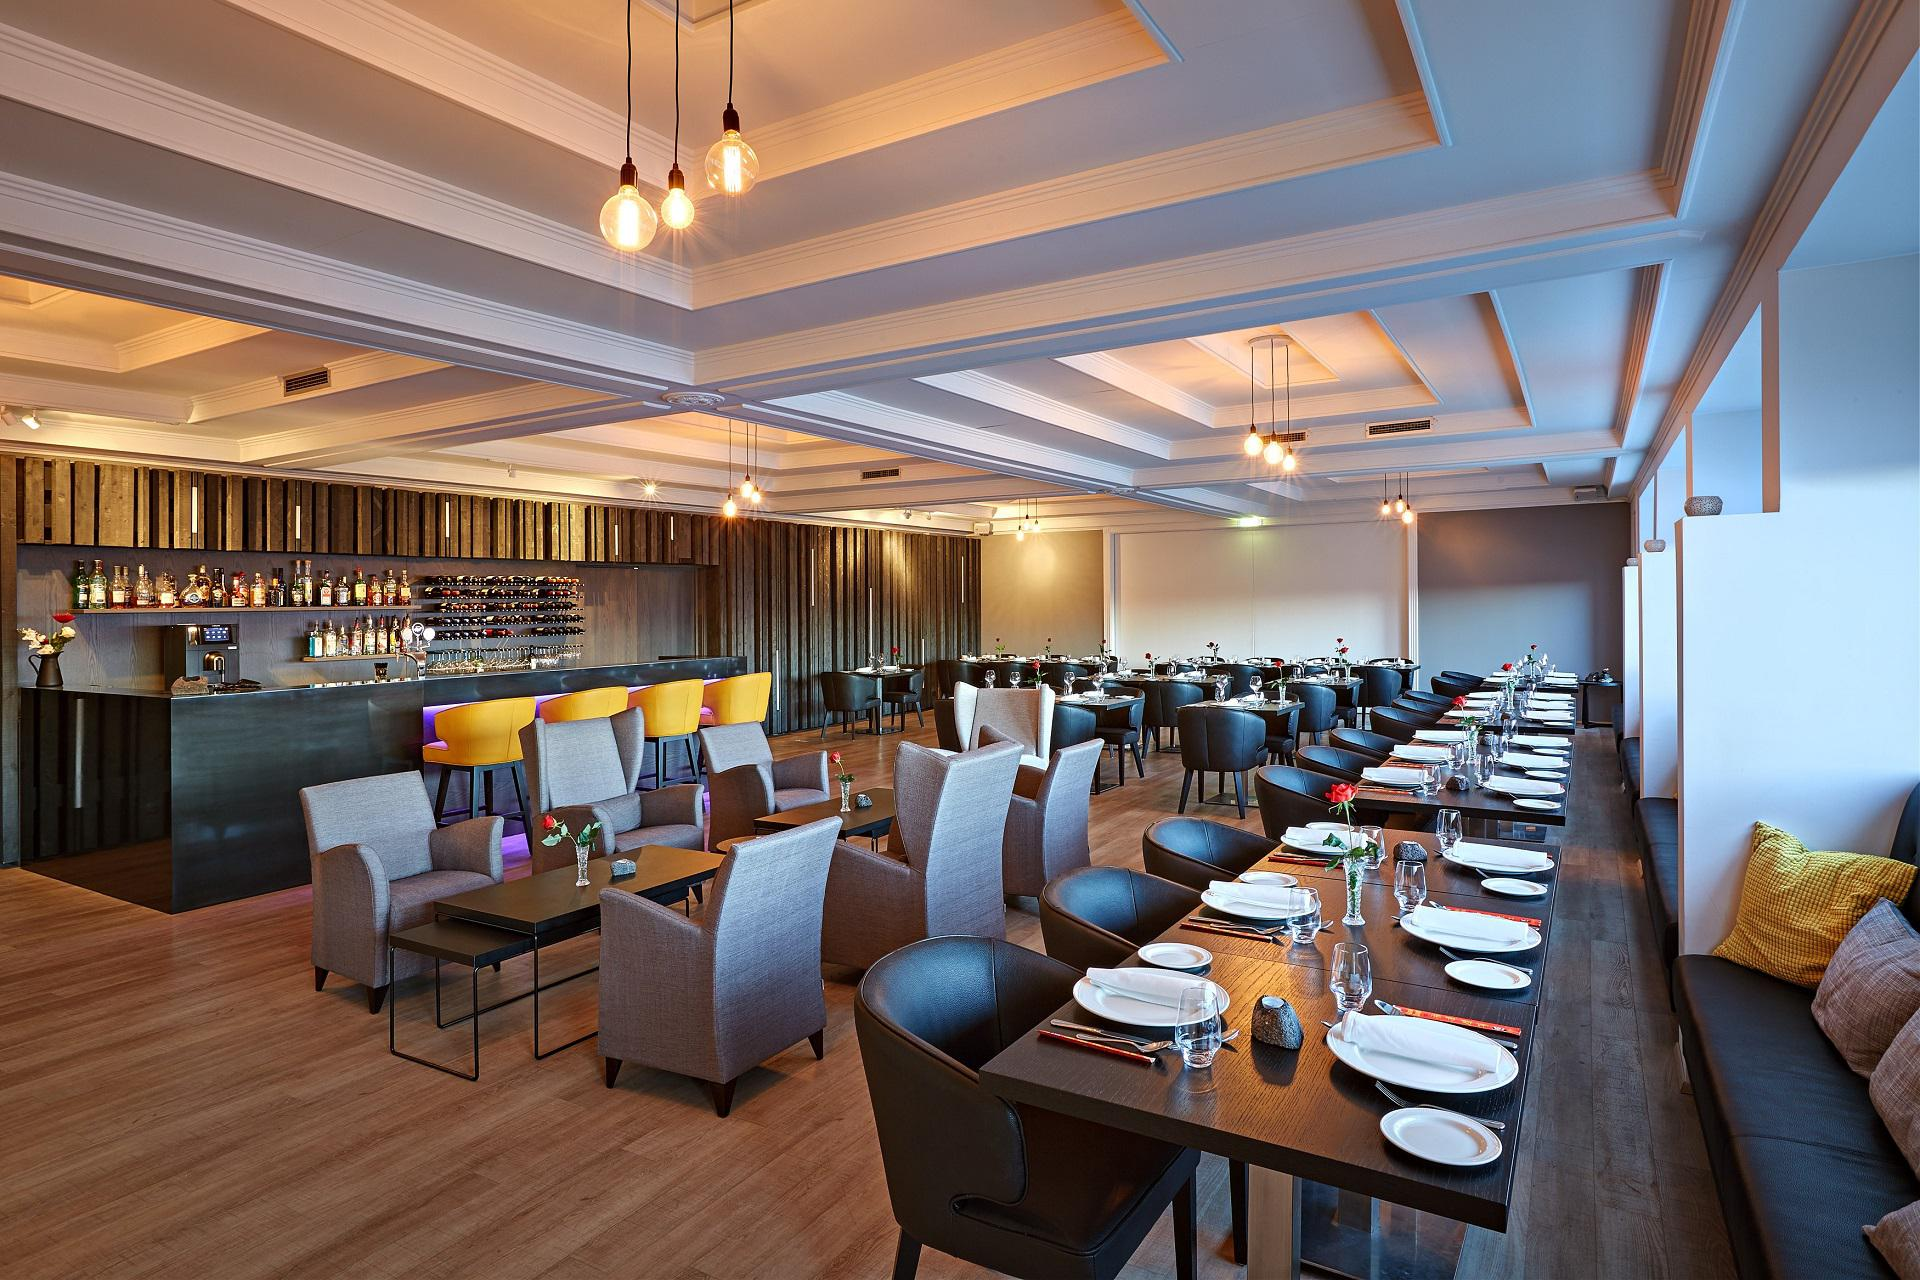 HVER Restaurant is located in Hotel Örk. It is a first-class restaurant with an a la carté menu, as well as group menus. Reservations can be made in the Reception.